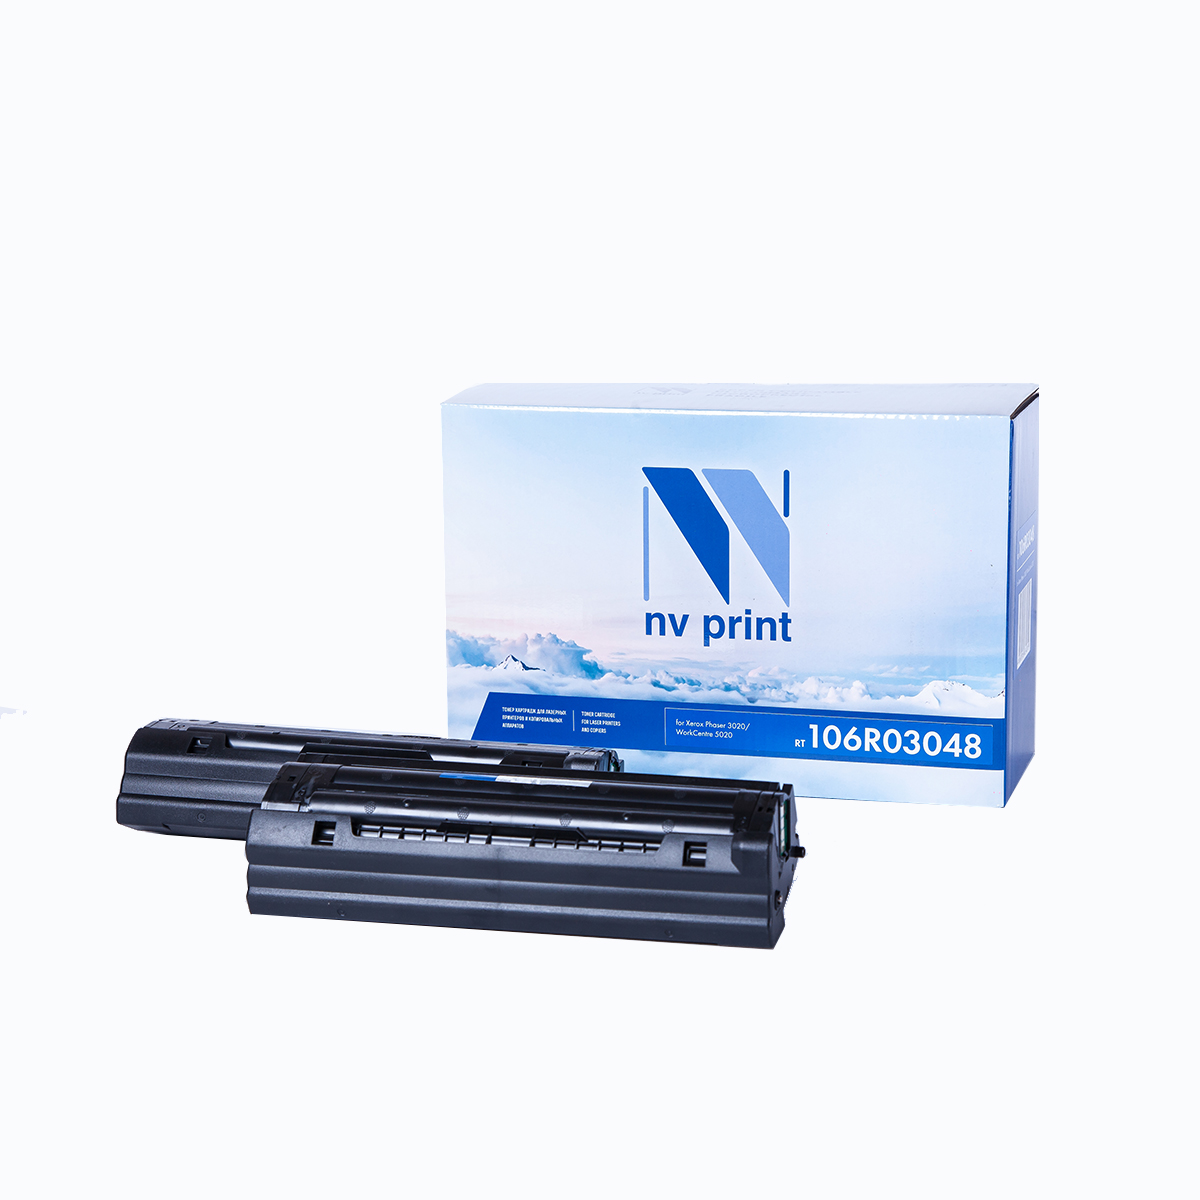 Картридж NV Print NV-106R03048 для Xerox Phaser 3020/WorkCentre 5020 (3000k) nv print xerox 106r01604